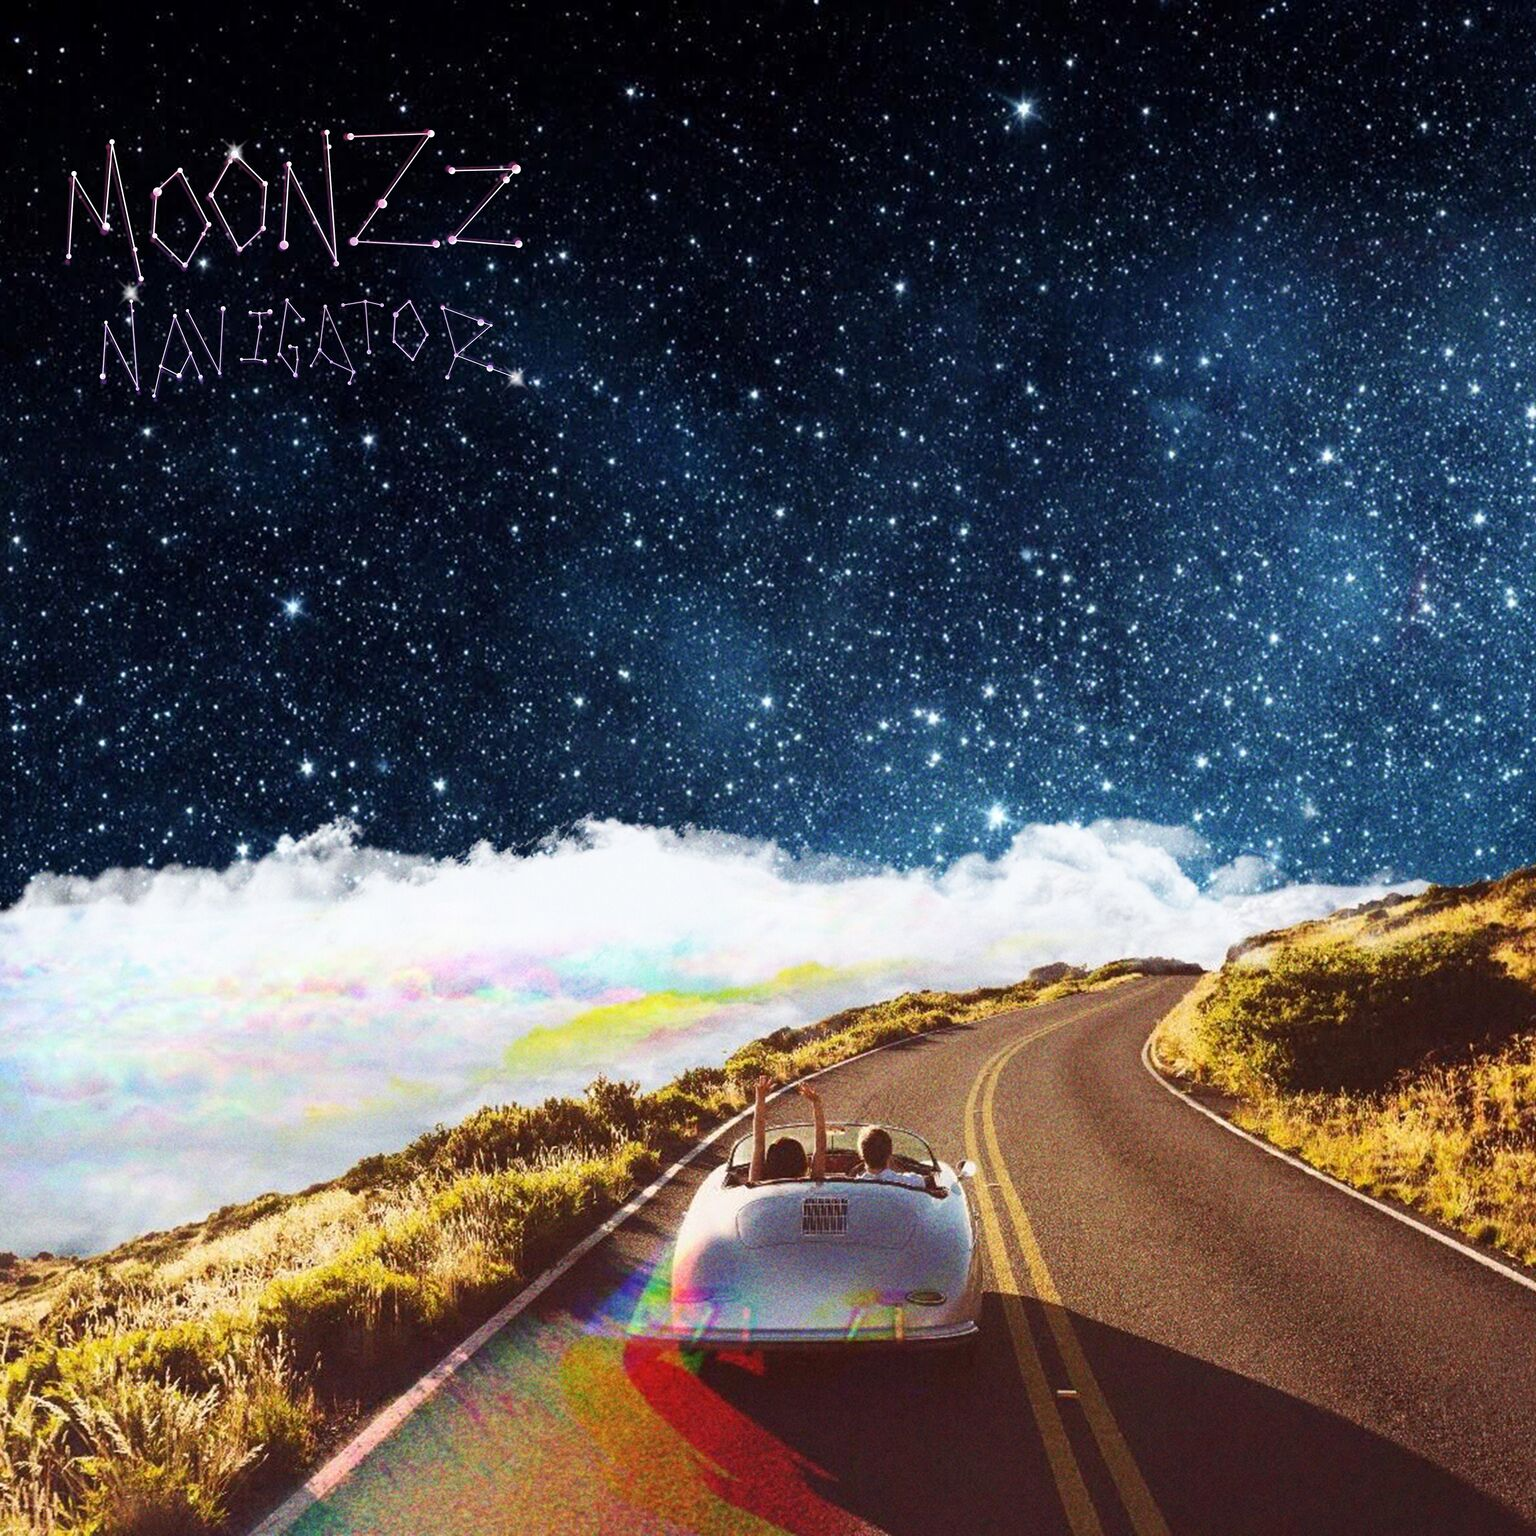 Track Review: MOONZz & Restless Modern, 'Navigator'